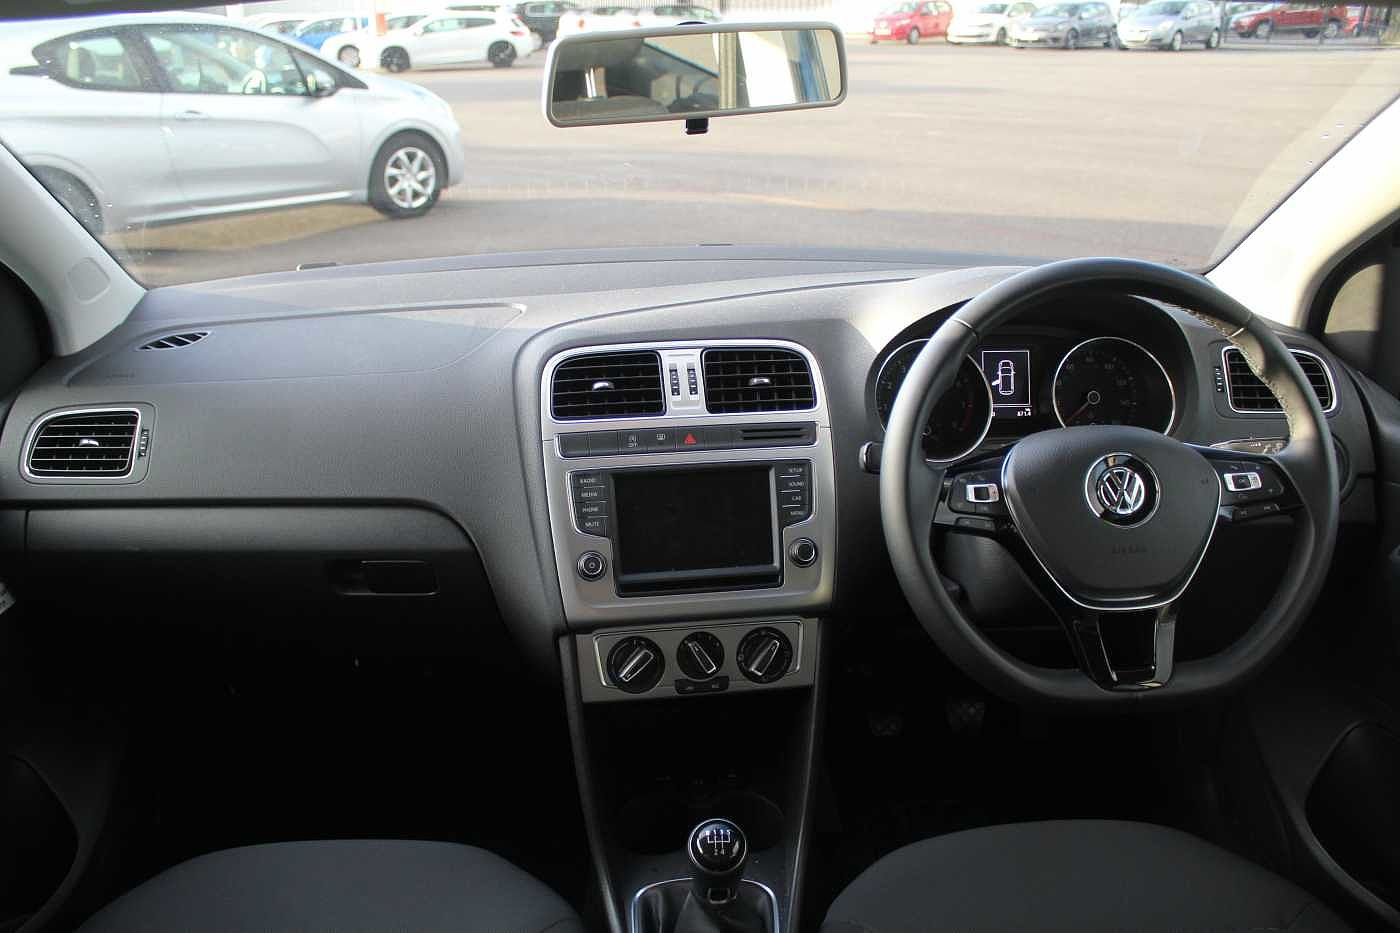 Volkswagen Polo 1.0 TSI BlueMotion (95 PS) 5-Dr